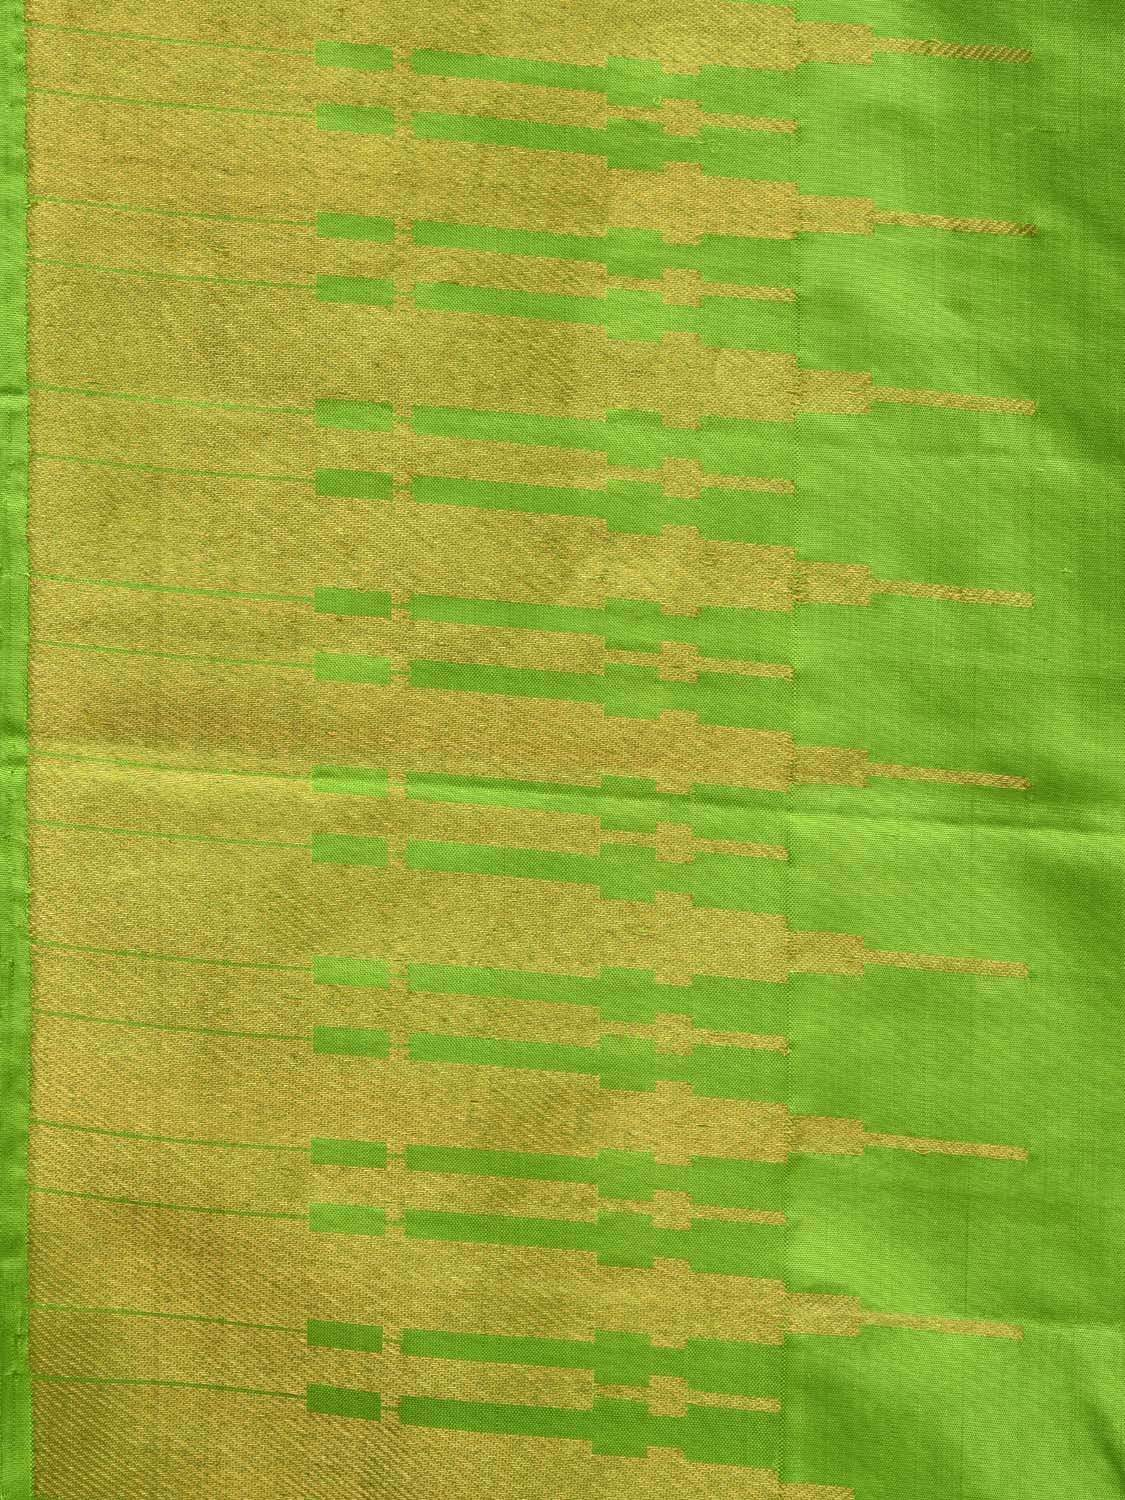 Green Kanchipuram Silk Handloom Saree with Border Temple Design k0498